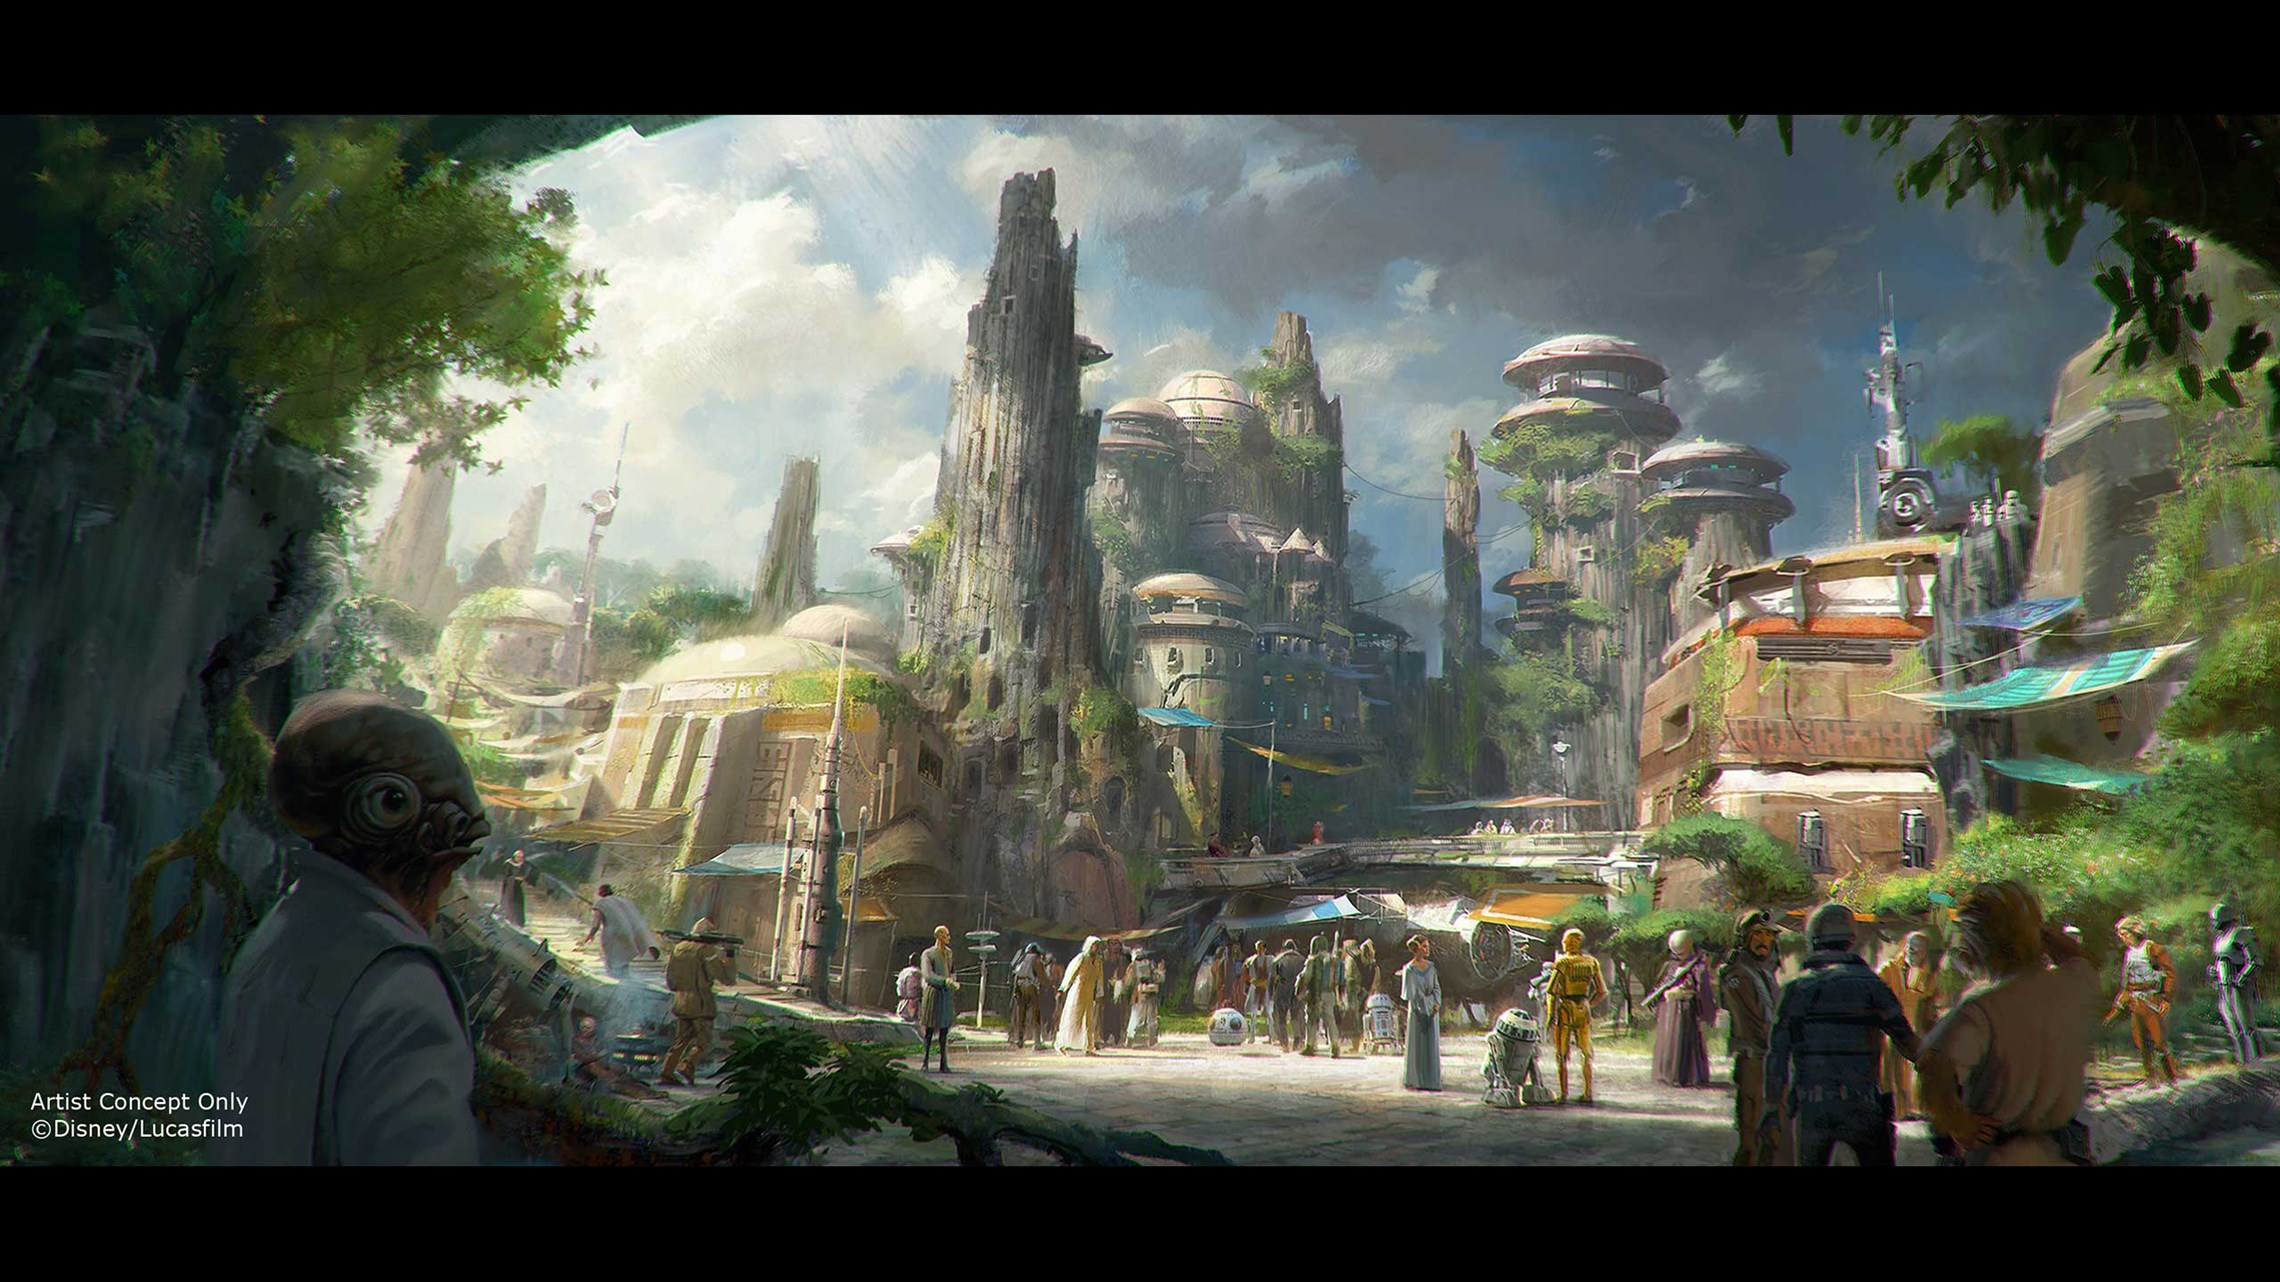 Star Wars Land - Disney